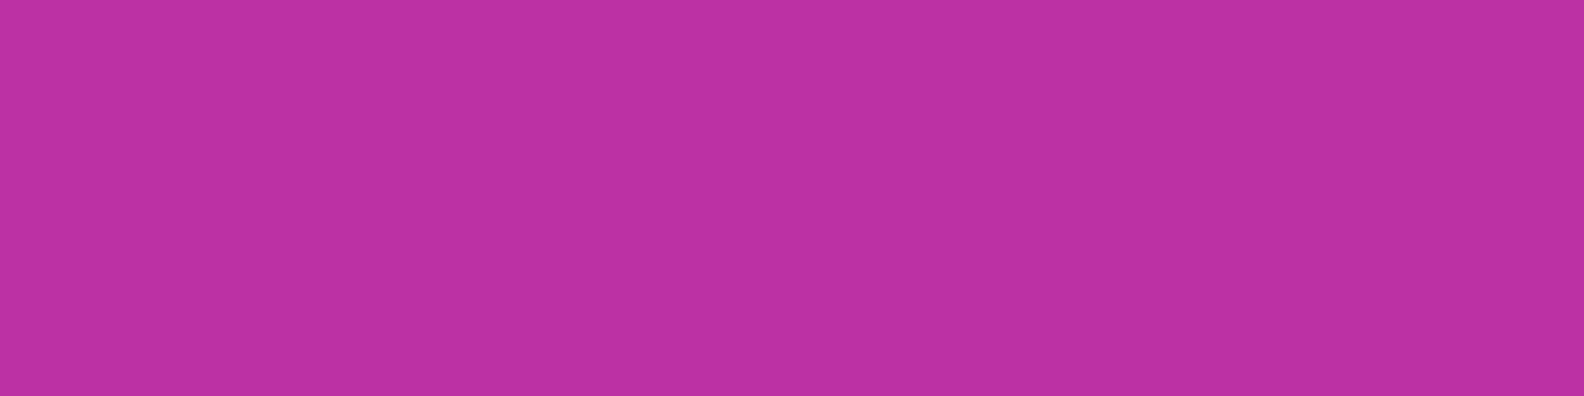 1584x396 Byzantine Solid Color Background